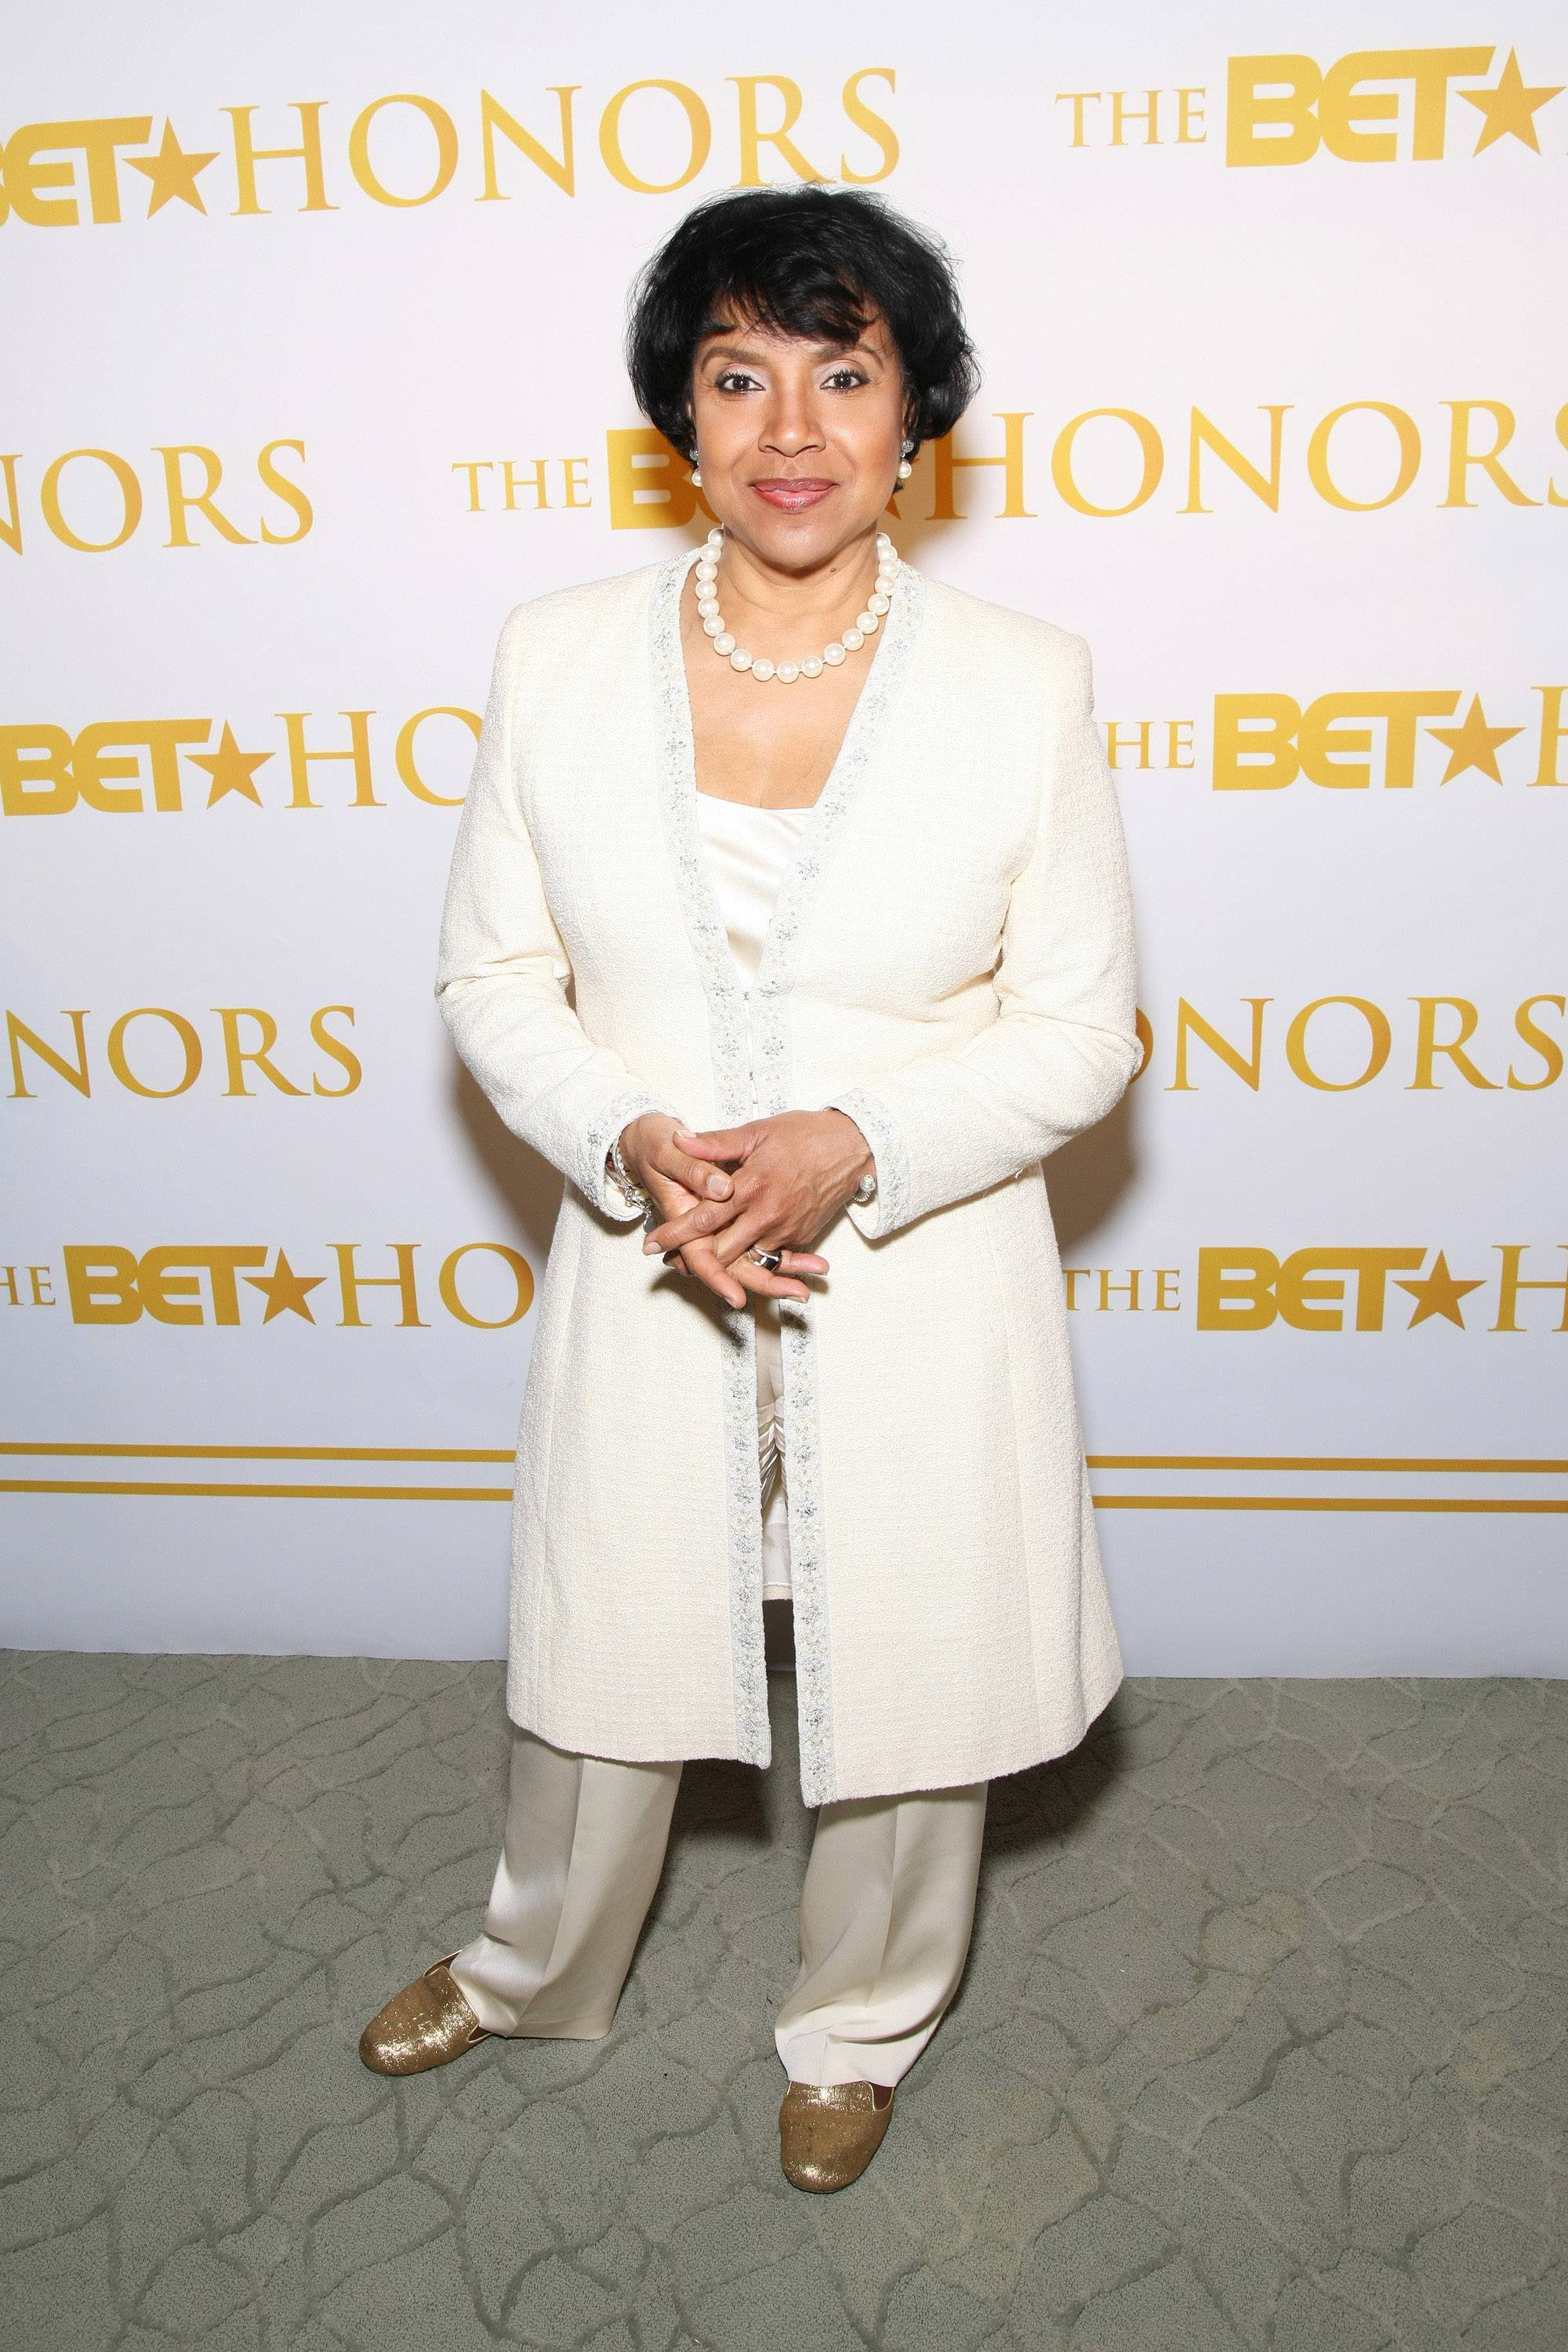 Mother Phylicia - Theatrical Arts honoree Phylicia Rashad debuts a new 'do on the red carpet of the honoree.(Photo: Bennett Raglin/BET/Getty Images for BET)